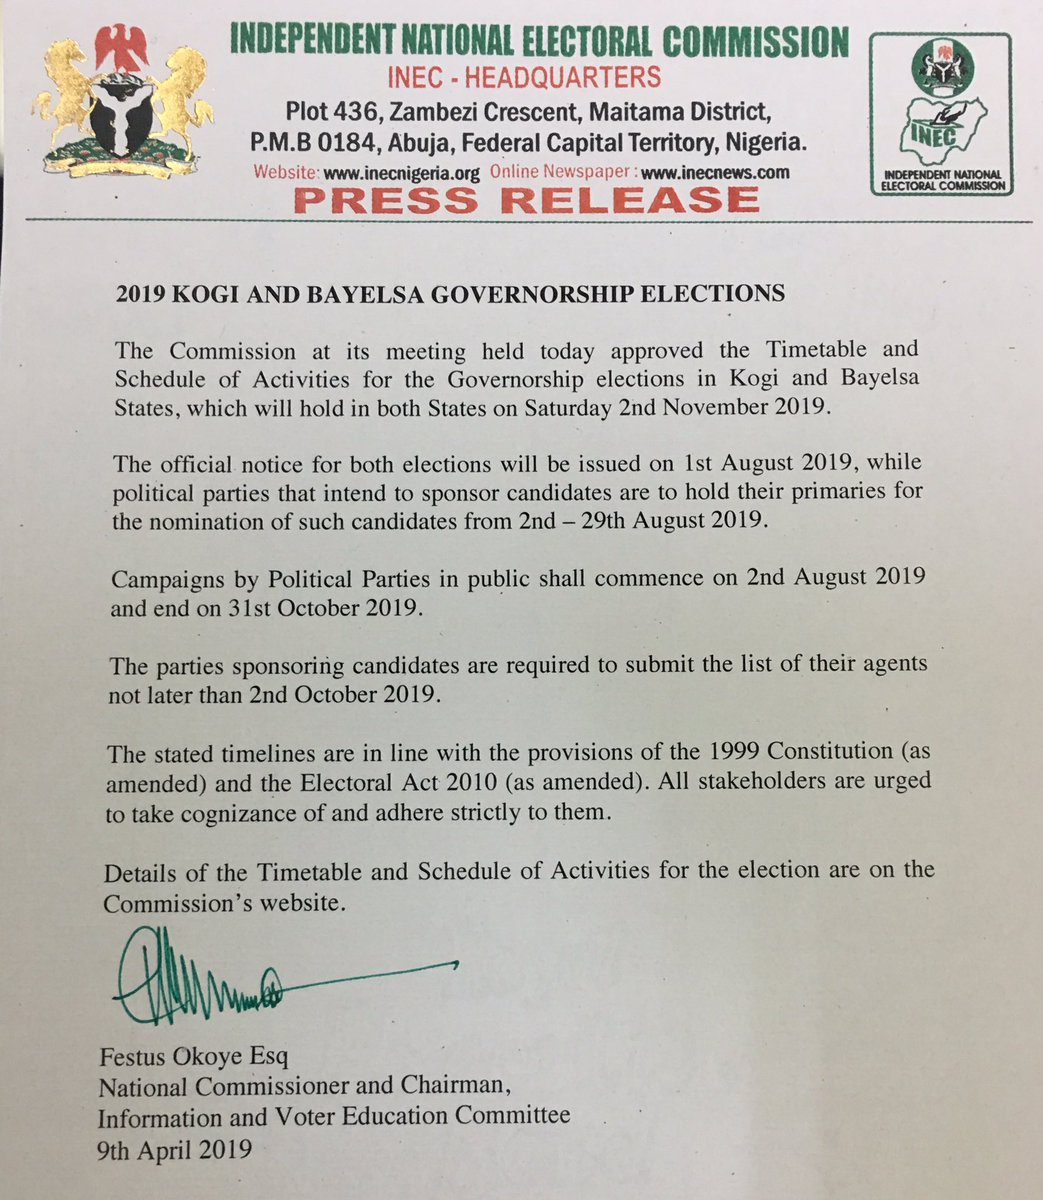 319e9a0d5a0f Press Release on 2019 Kogi and Bayelsa Governorship Elections The  Commission at its meeting held today approved the Timetable and Schedule of  Activities for ...